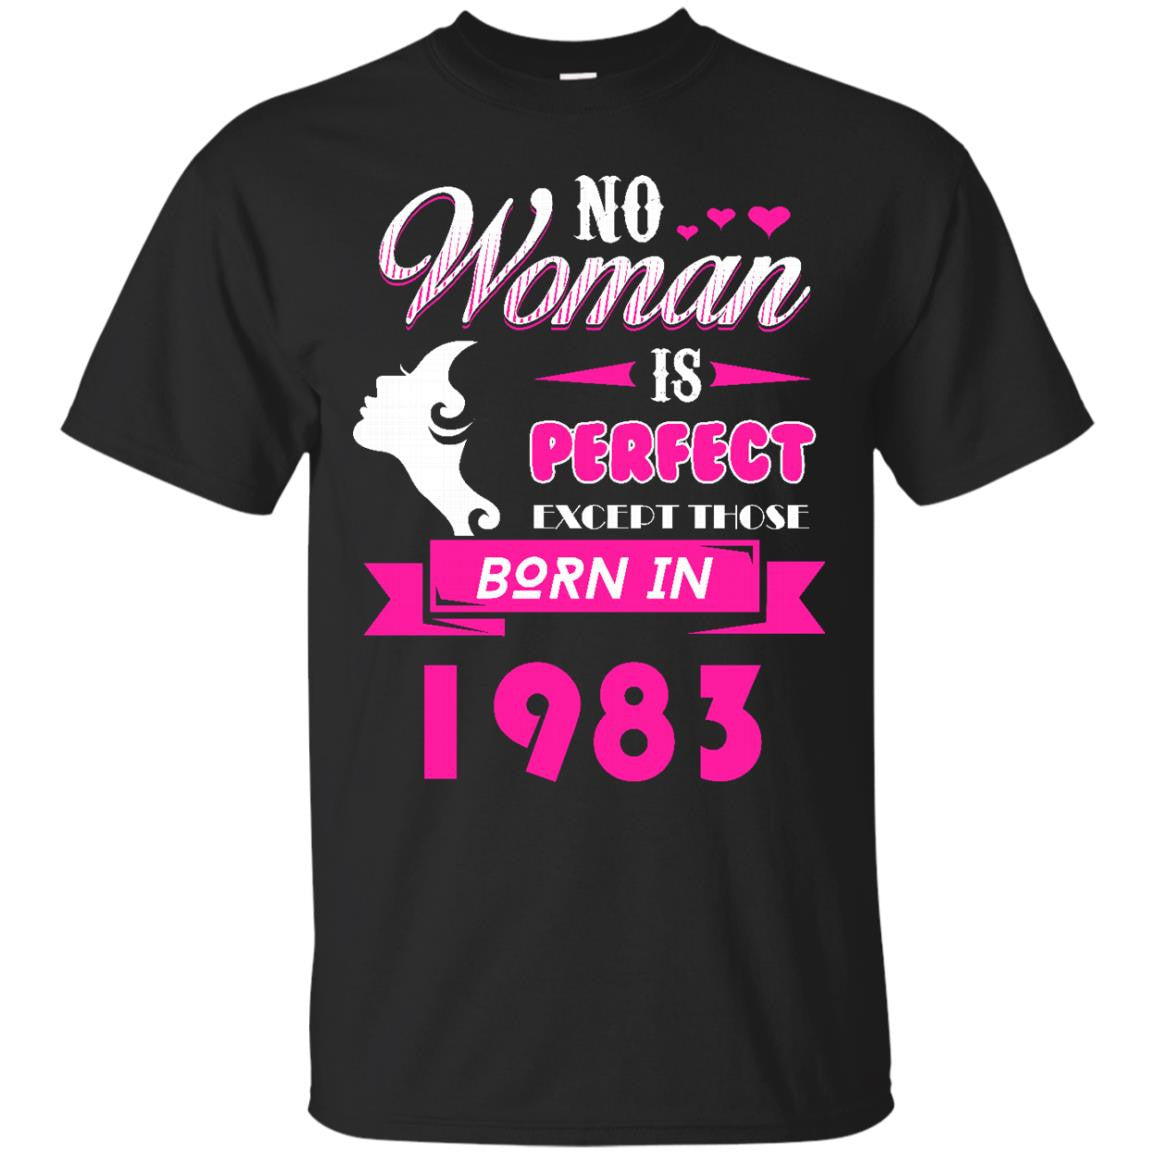 1983 Woman Shirts No Woman Perfect Except Those In 1983 T-shirts Hoodies Sweatshirts